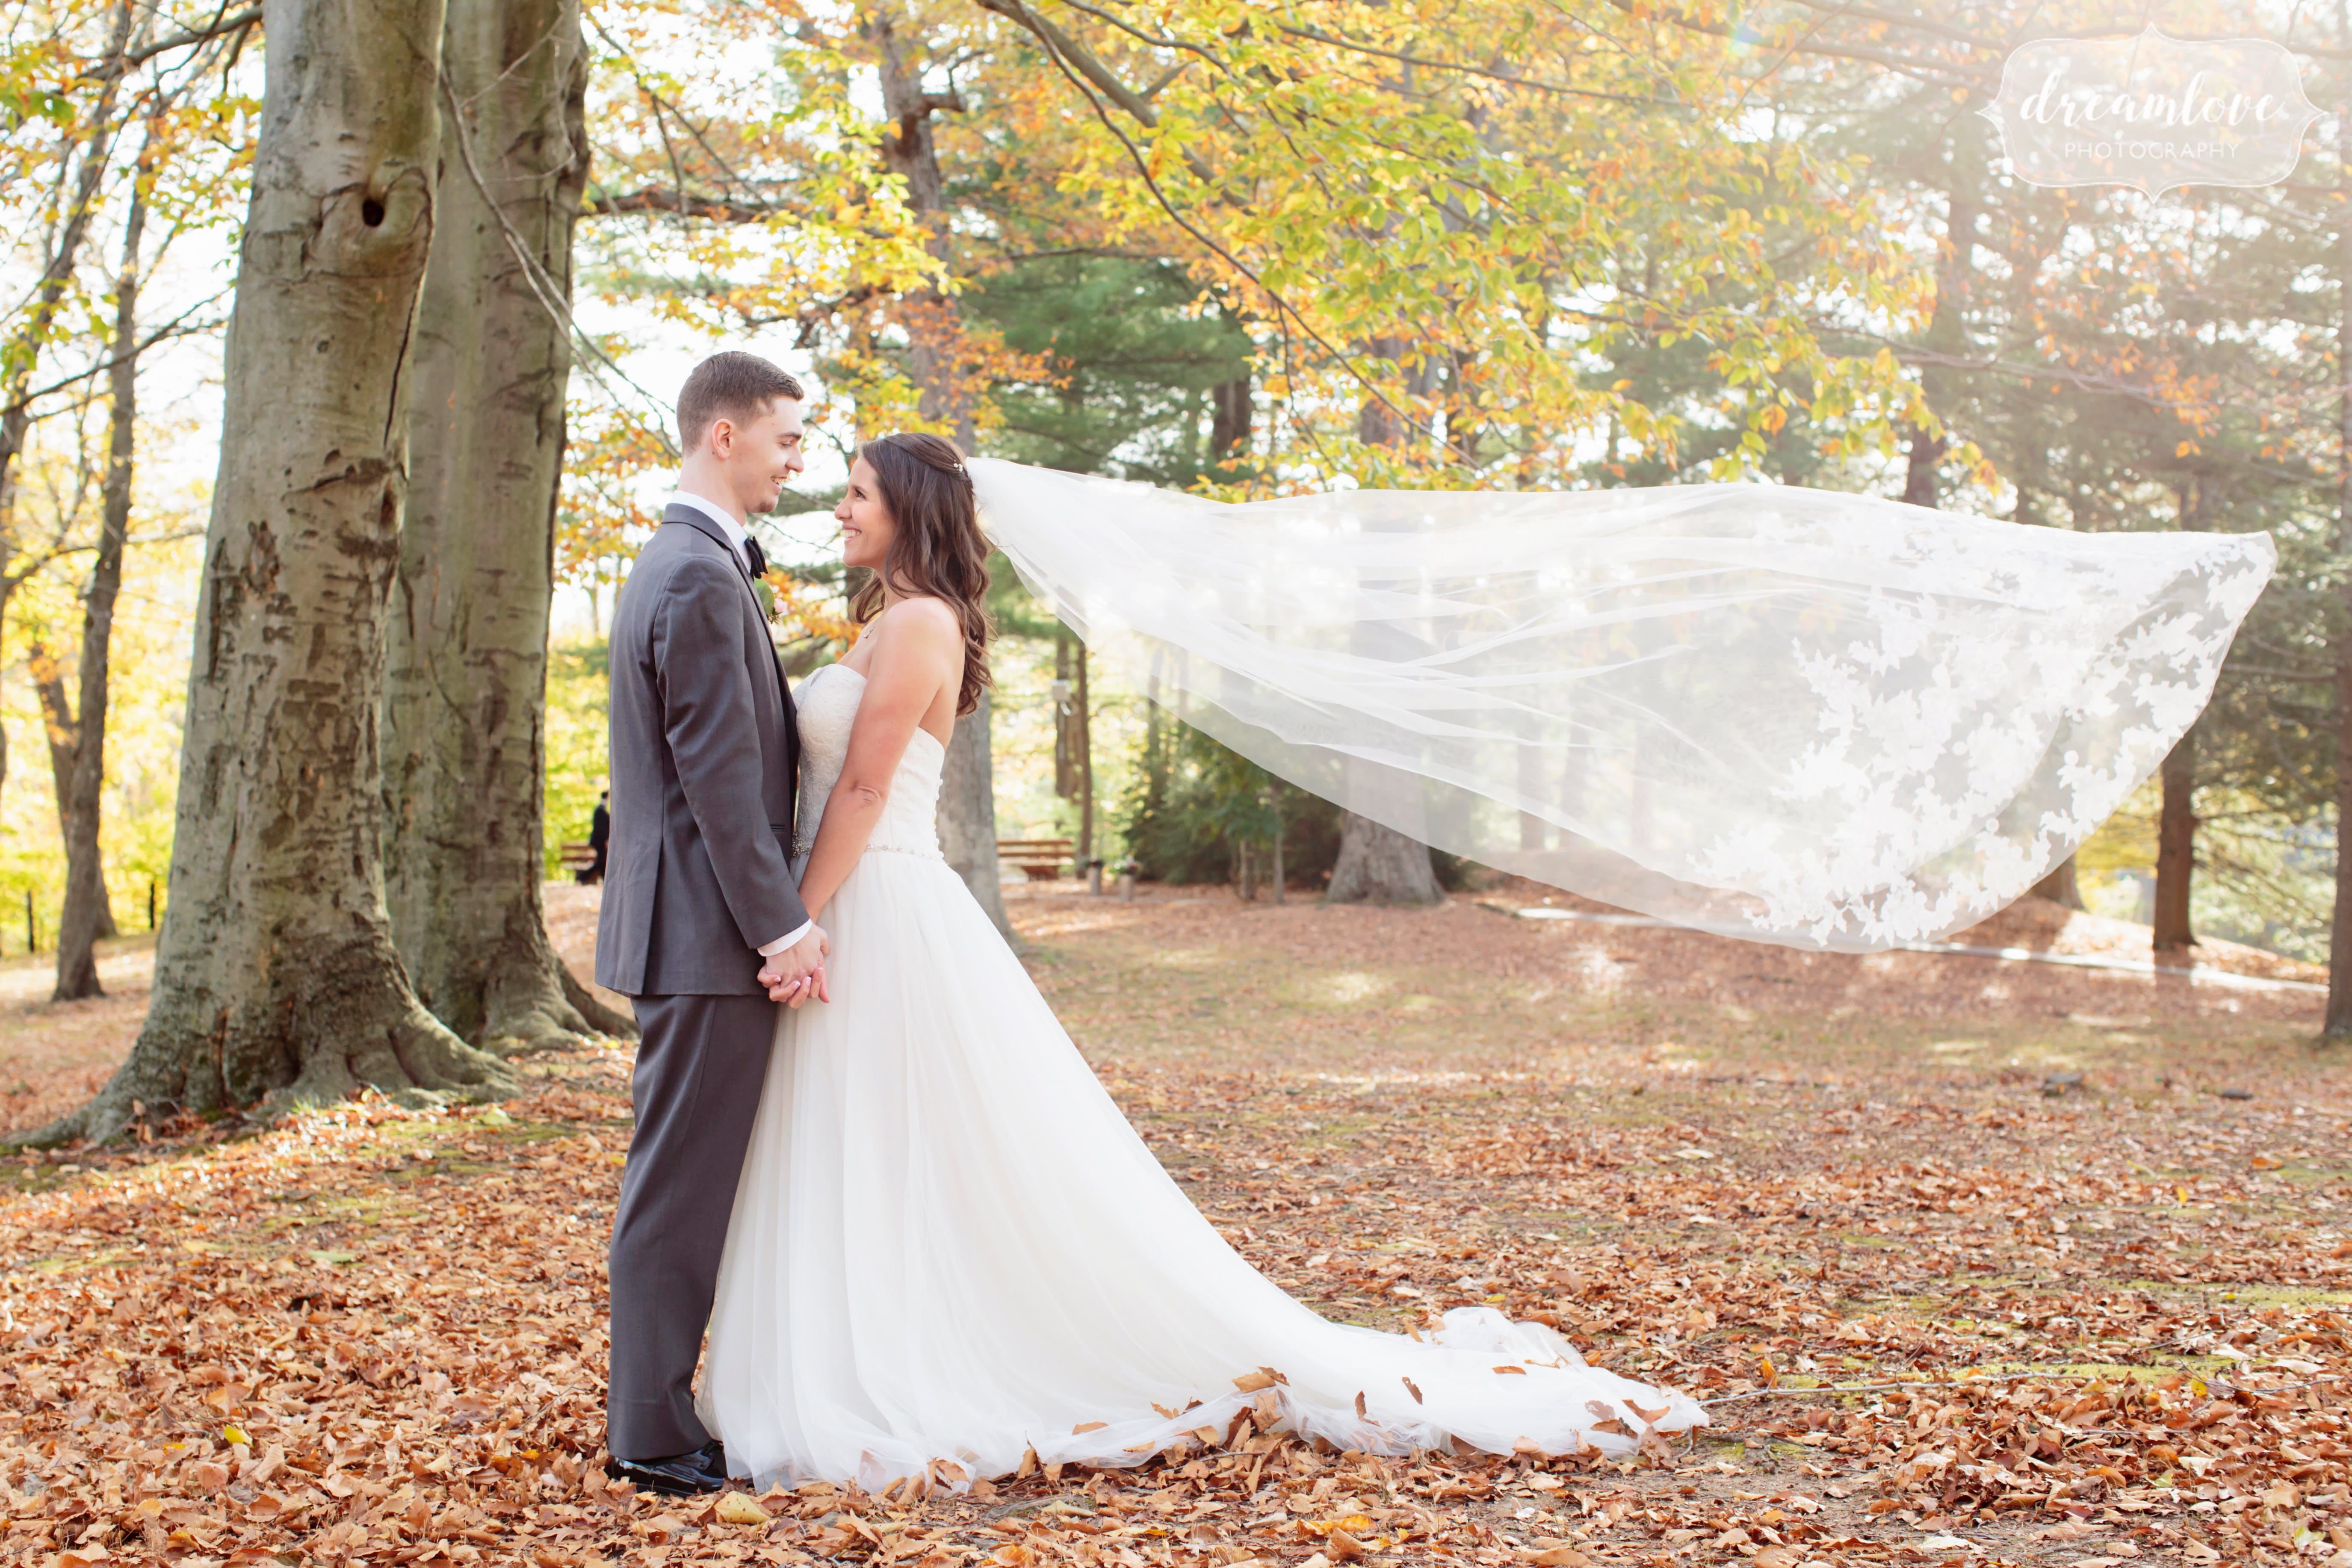 The bride's veil went flying in the wind during this November outdoor wedding in CT.